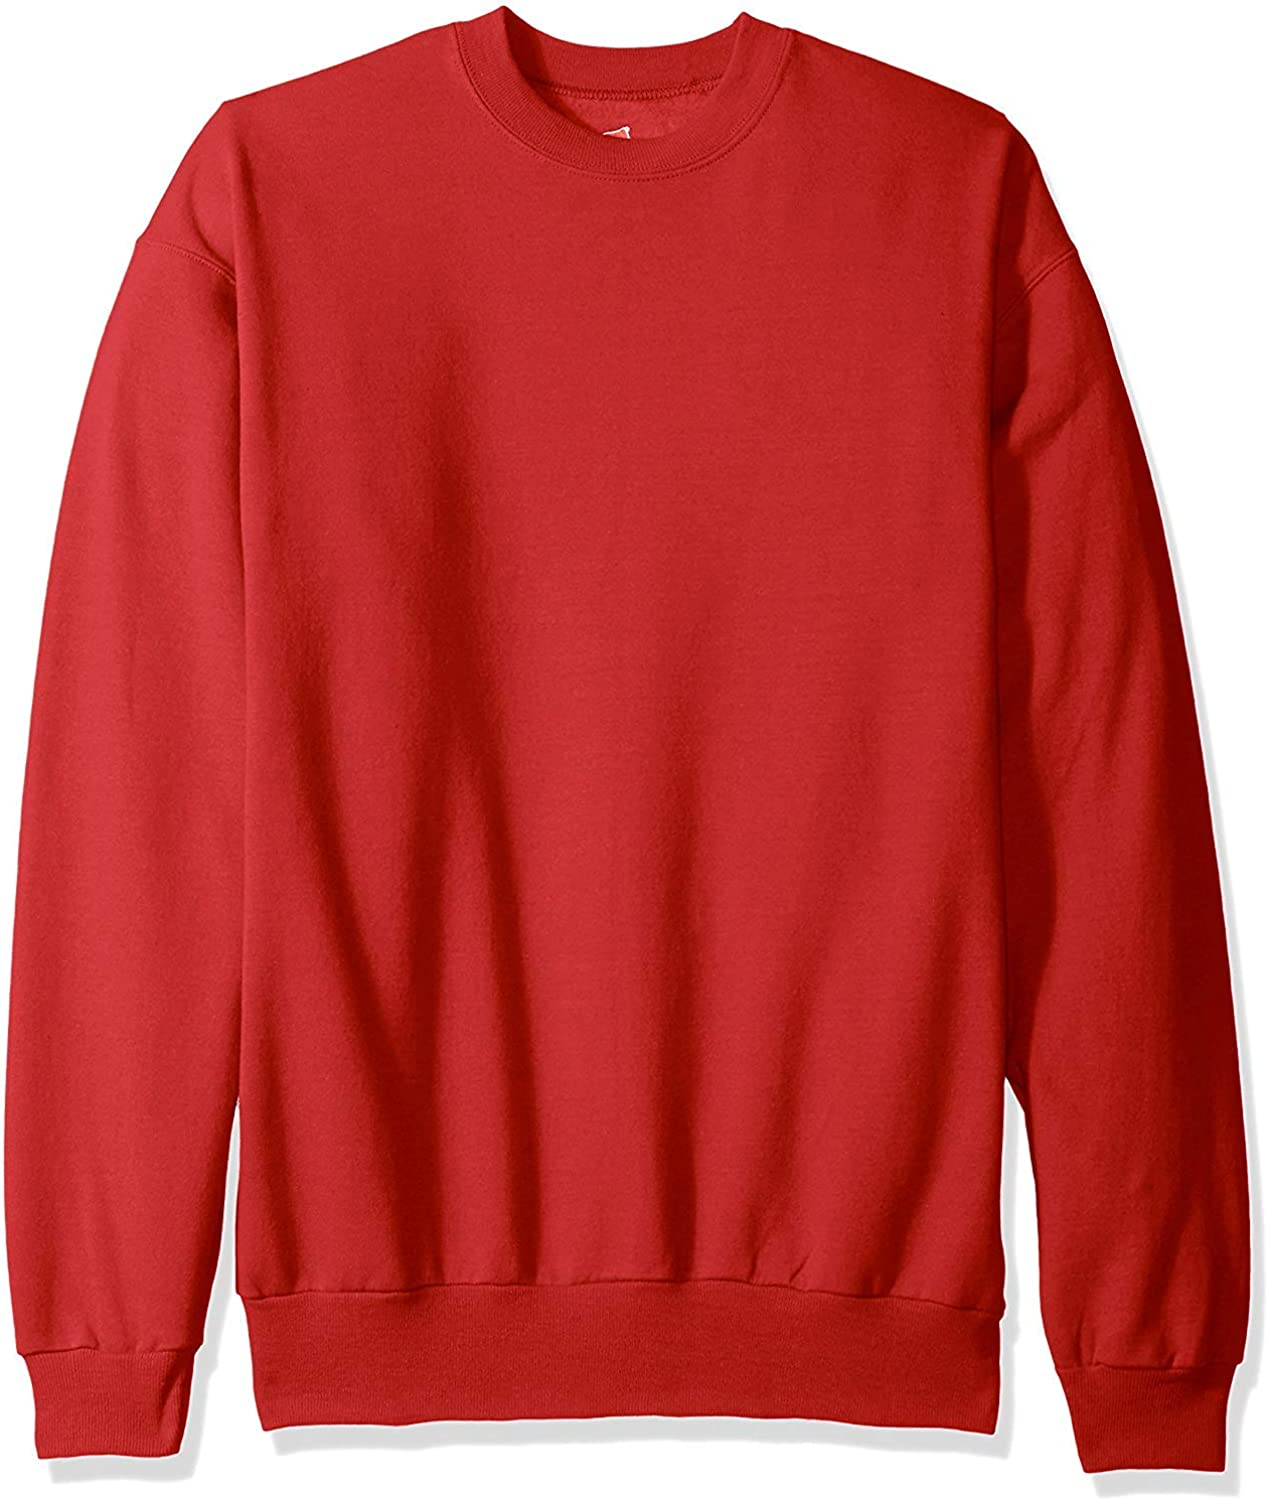 Hanes 7.8 oz. 50/50 Fleece Crew (P1607) Deep Red, 5XL